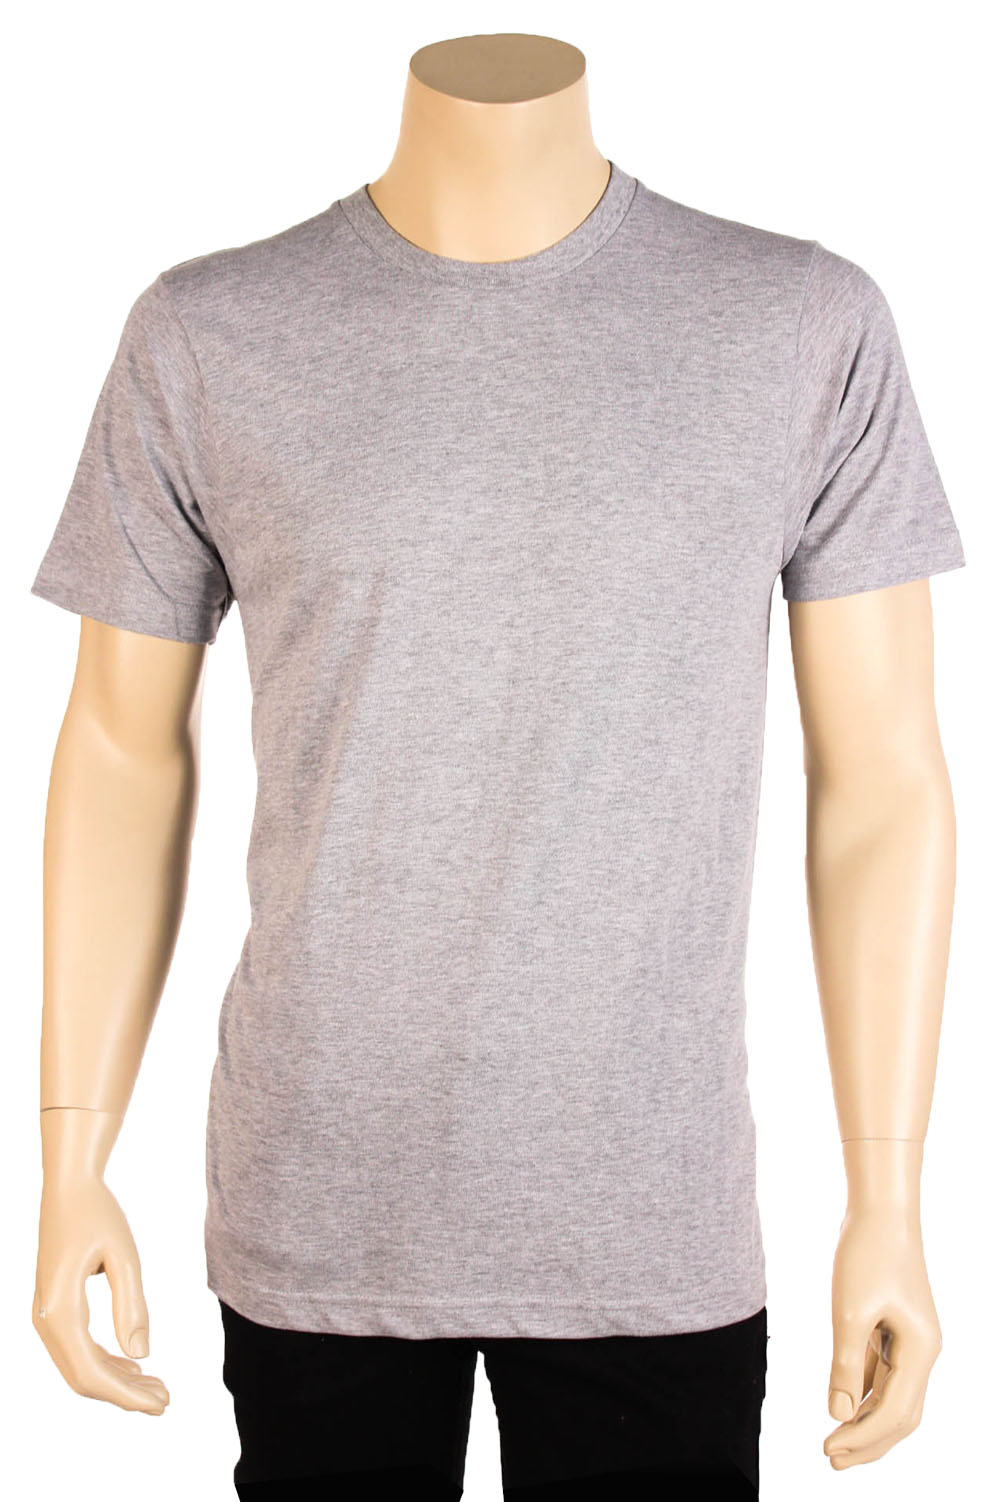 Mens 100 cotton tee t shirt crew neck lightweight basic for Mens 100 cotton t shirts